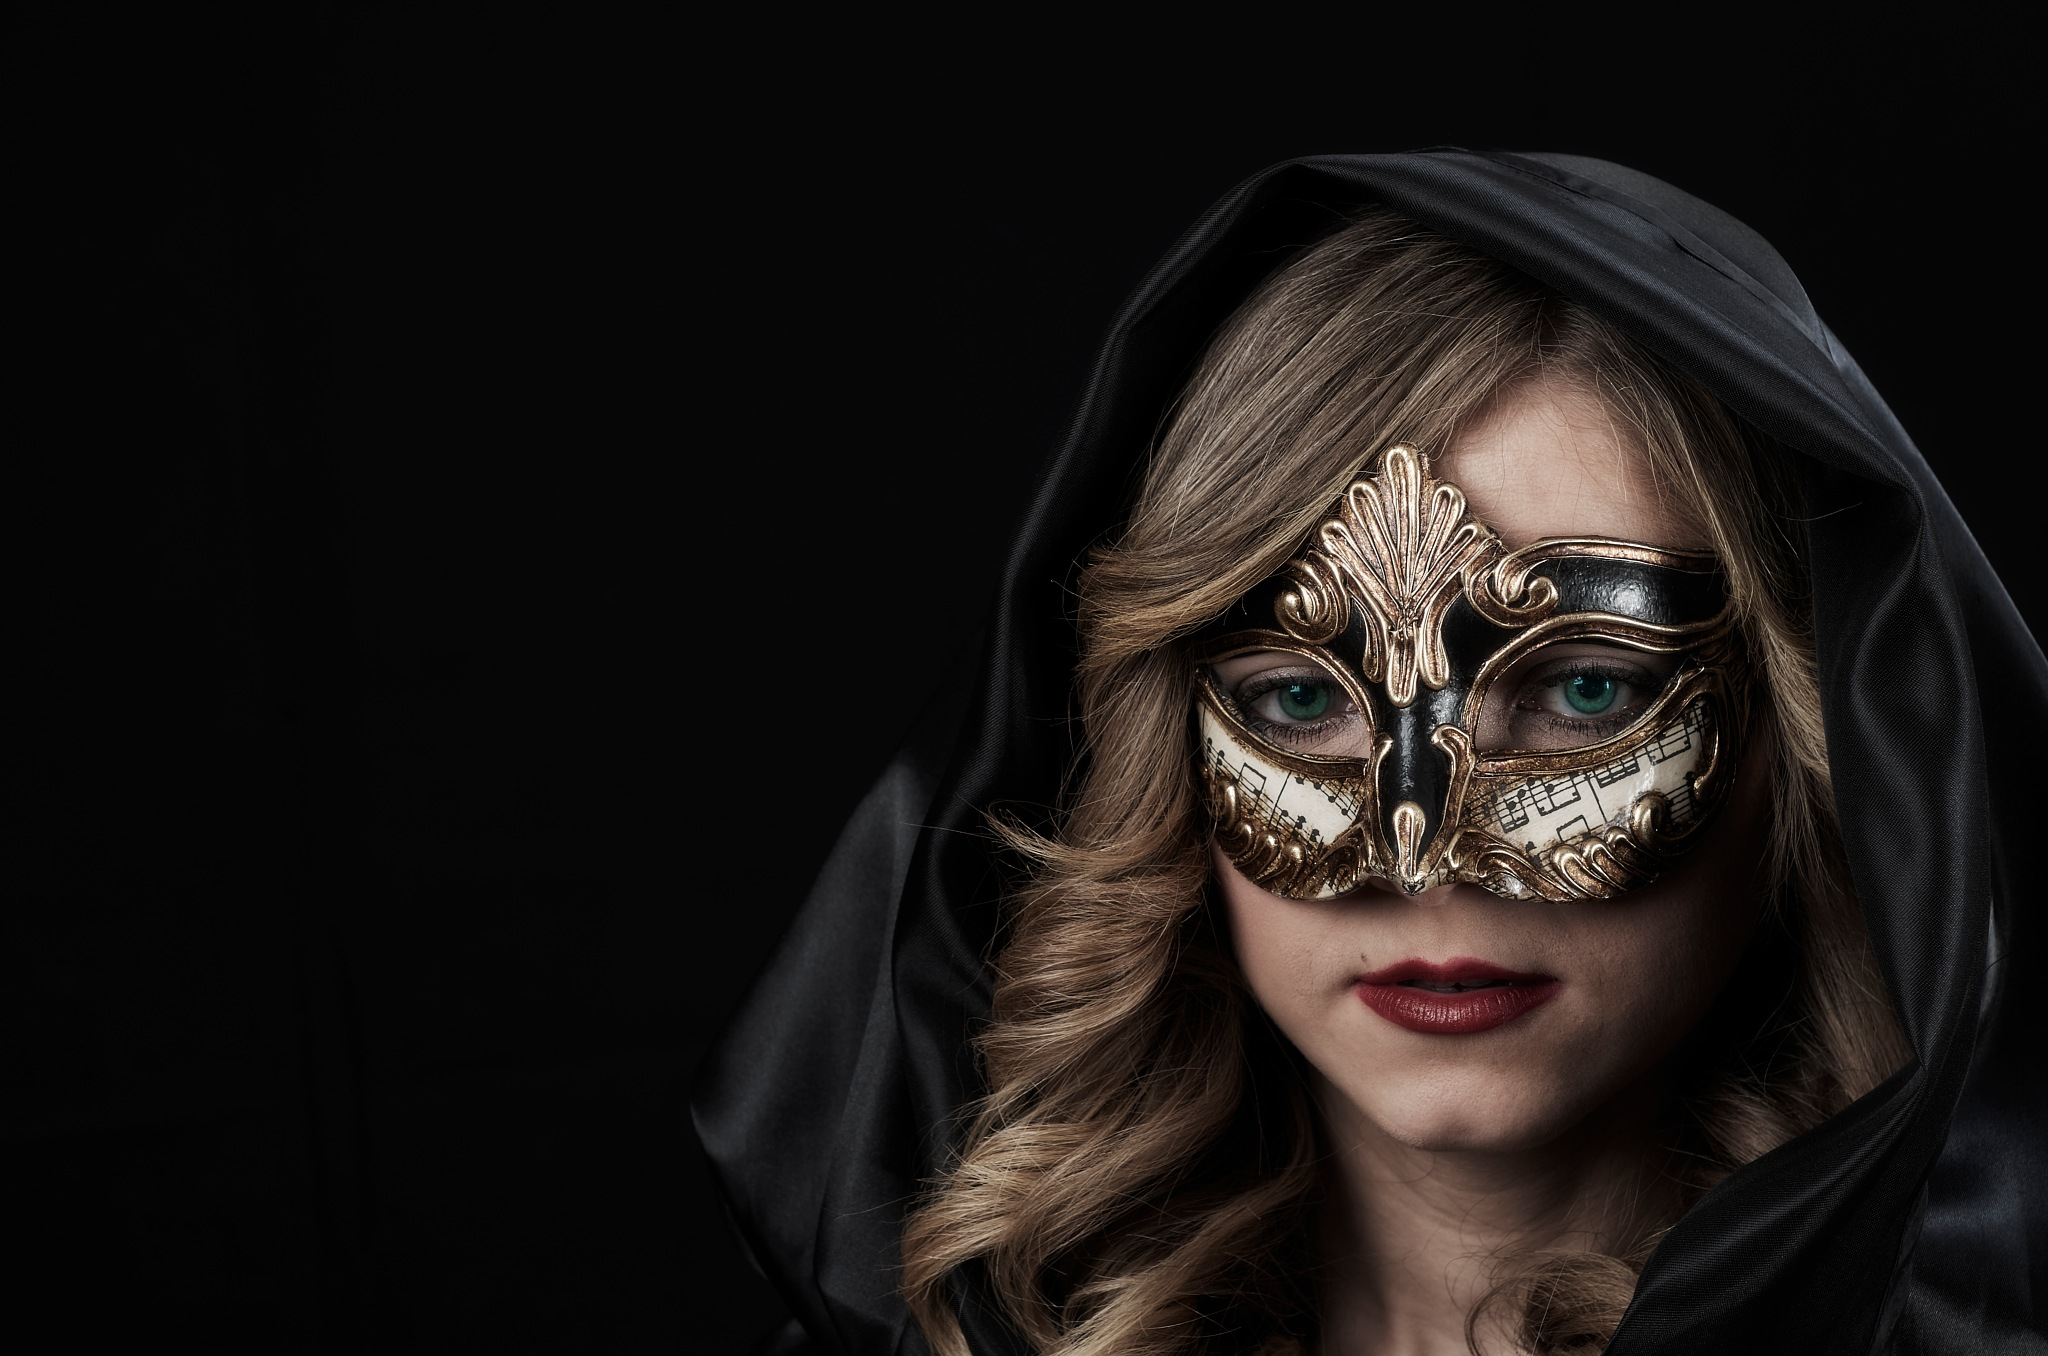 The woman and the mask by Nelo